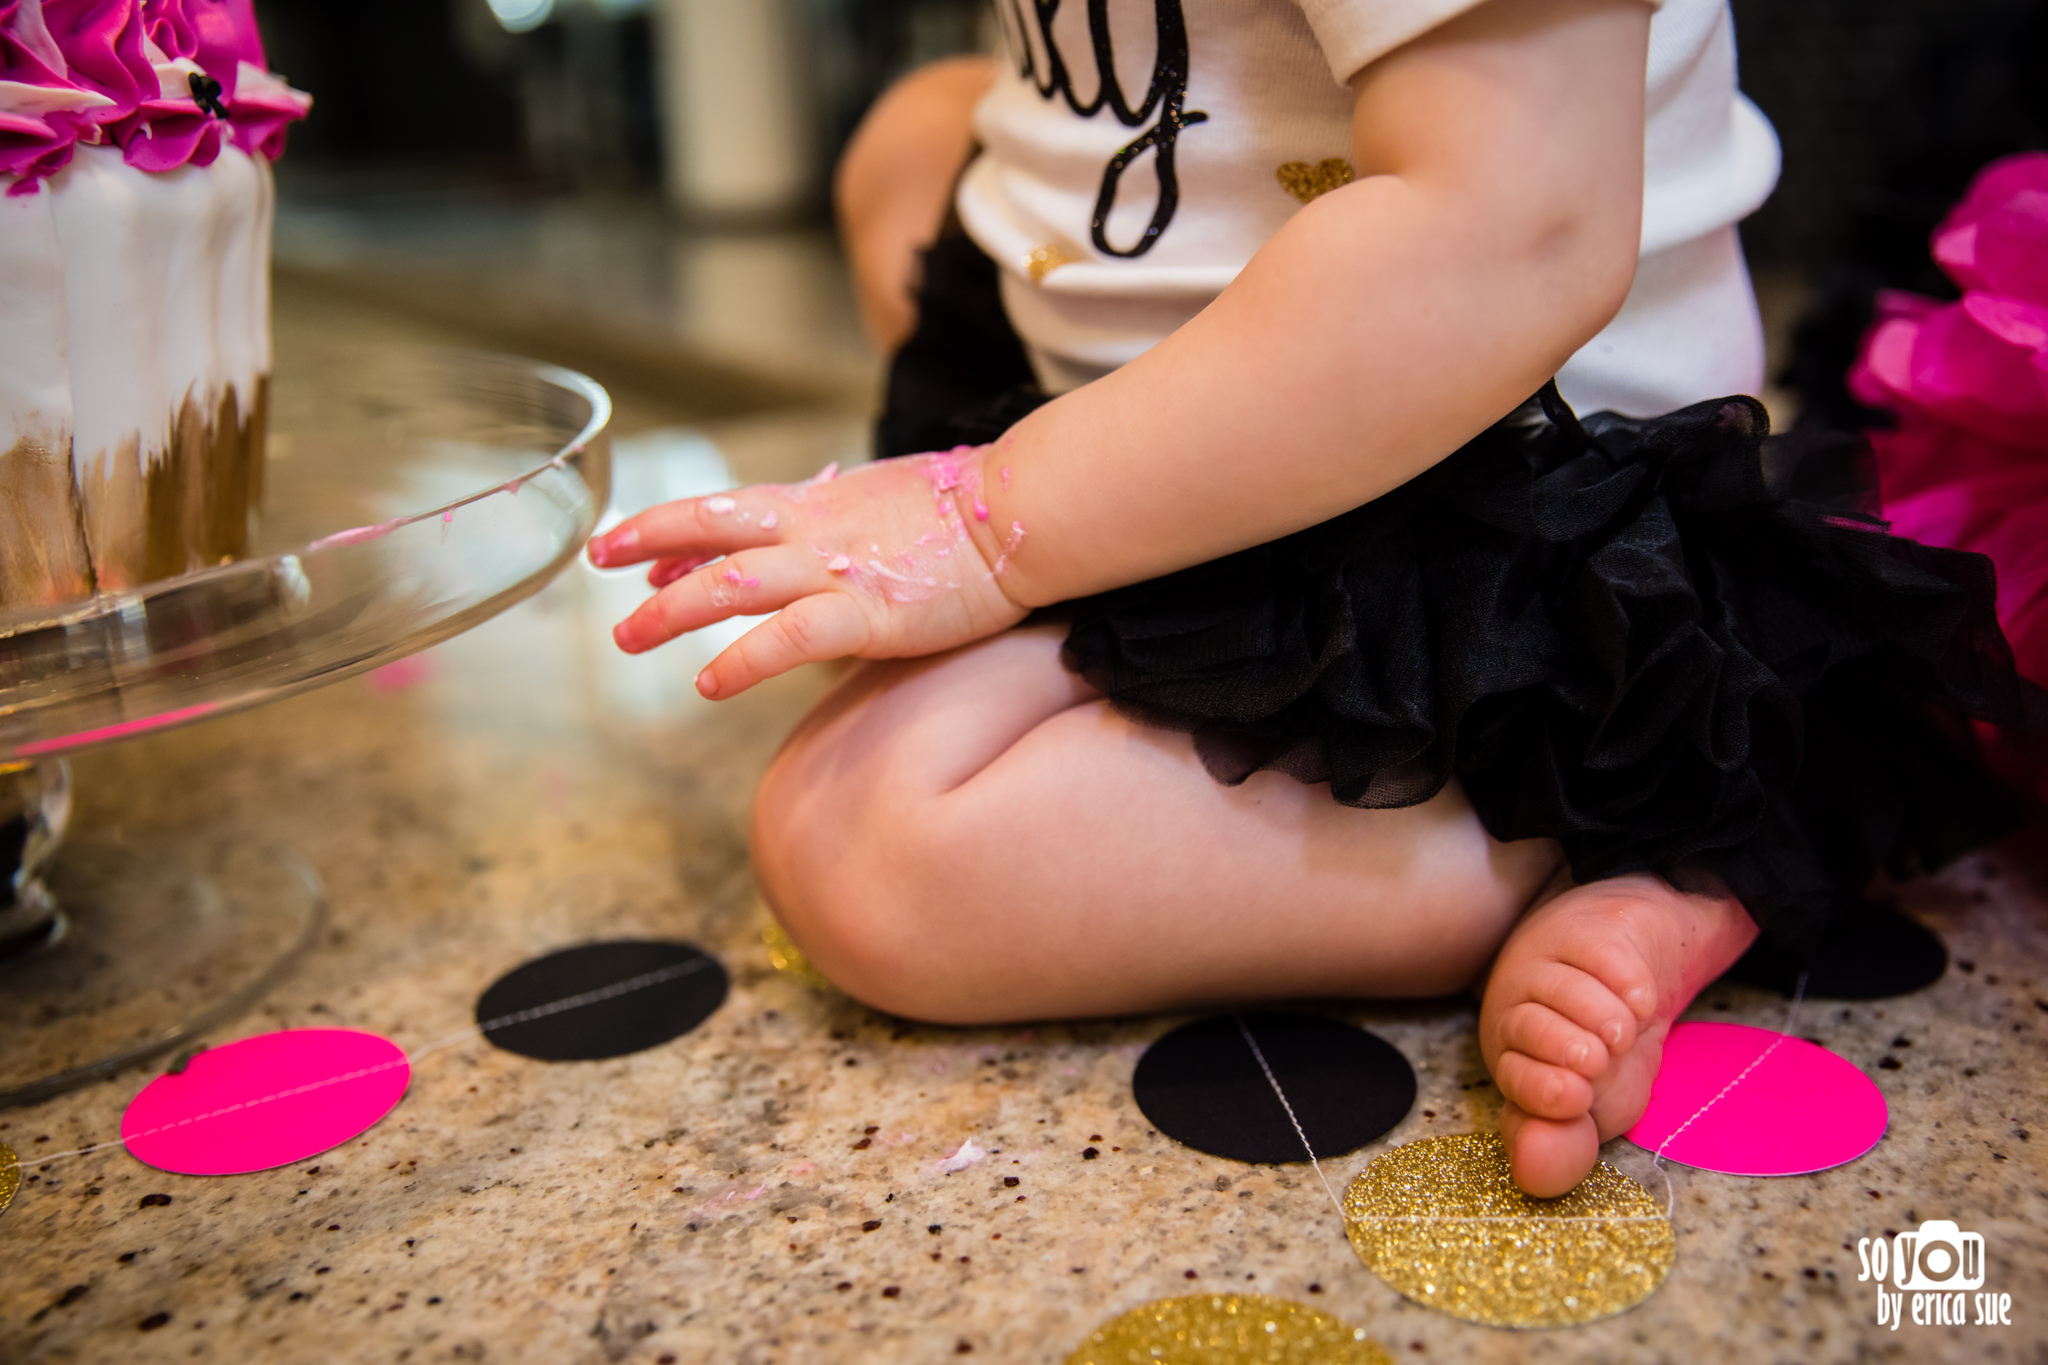 so-you-by-erica-sue-hollywood-fl-photographer-in-home-lifestyle-1st-birthday-cake-smash-3961.jpg